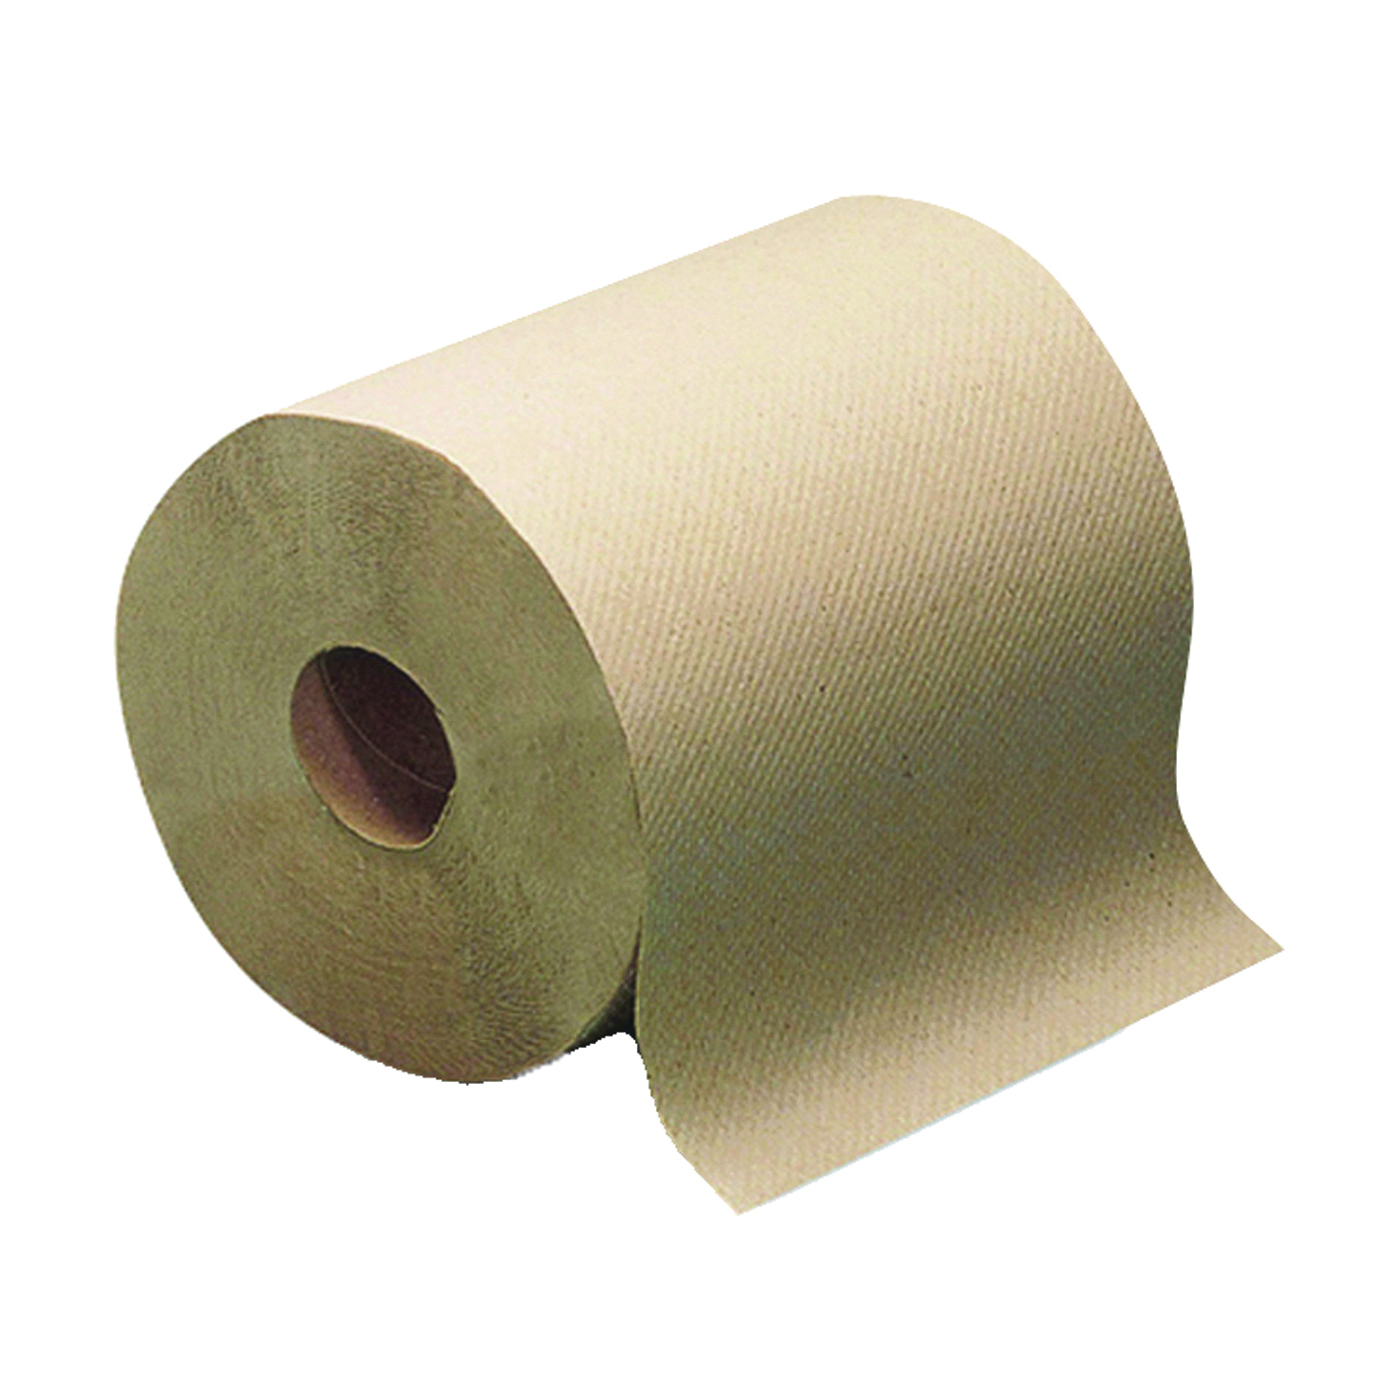 Picture of NORTH AMERICAN PAPER RK350A Paper Towel Roll Roll, 350 ft L, 7.9 in W